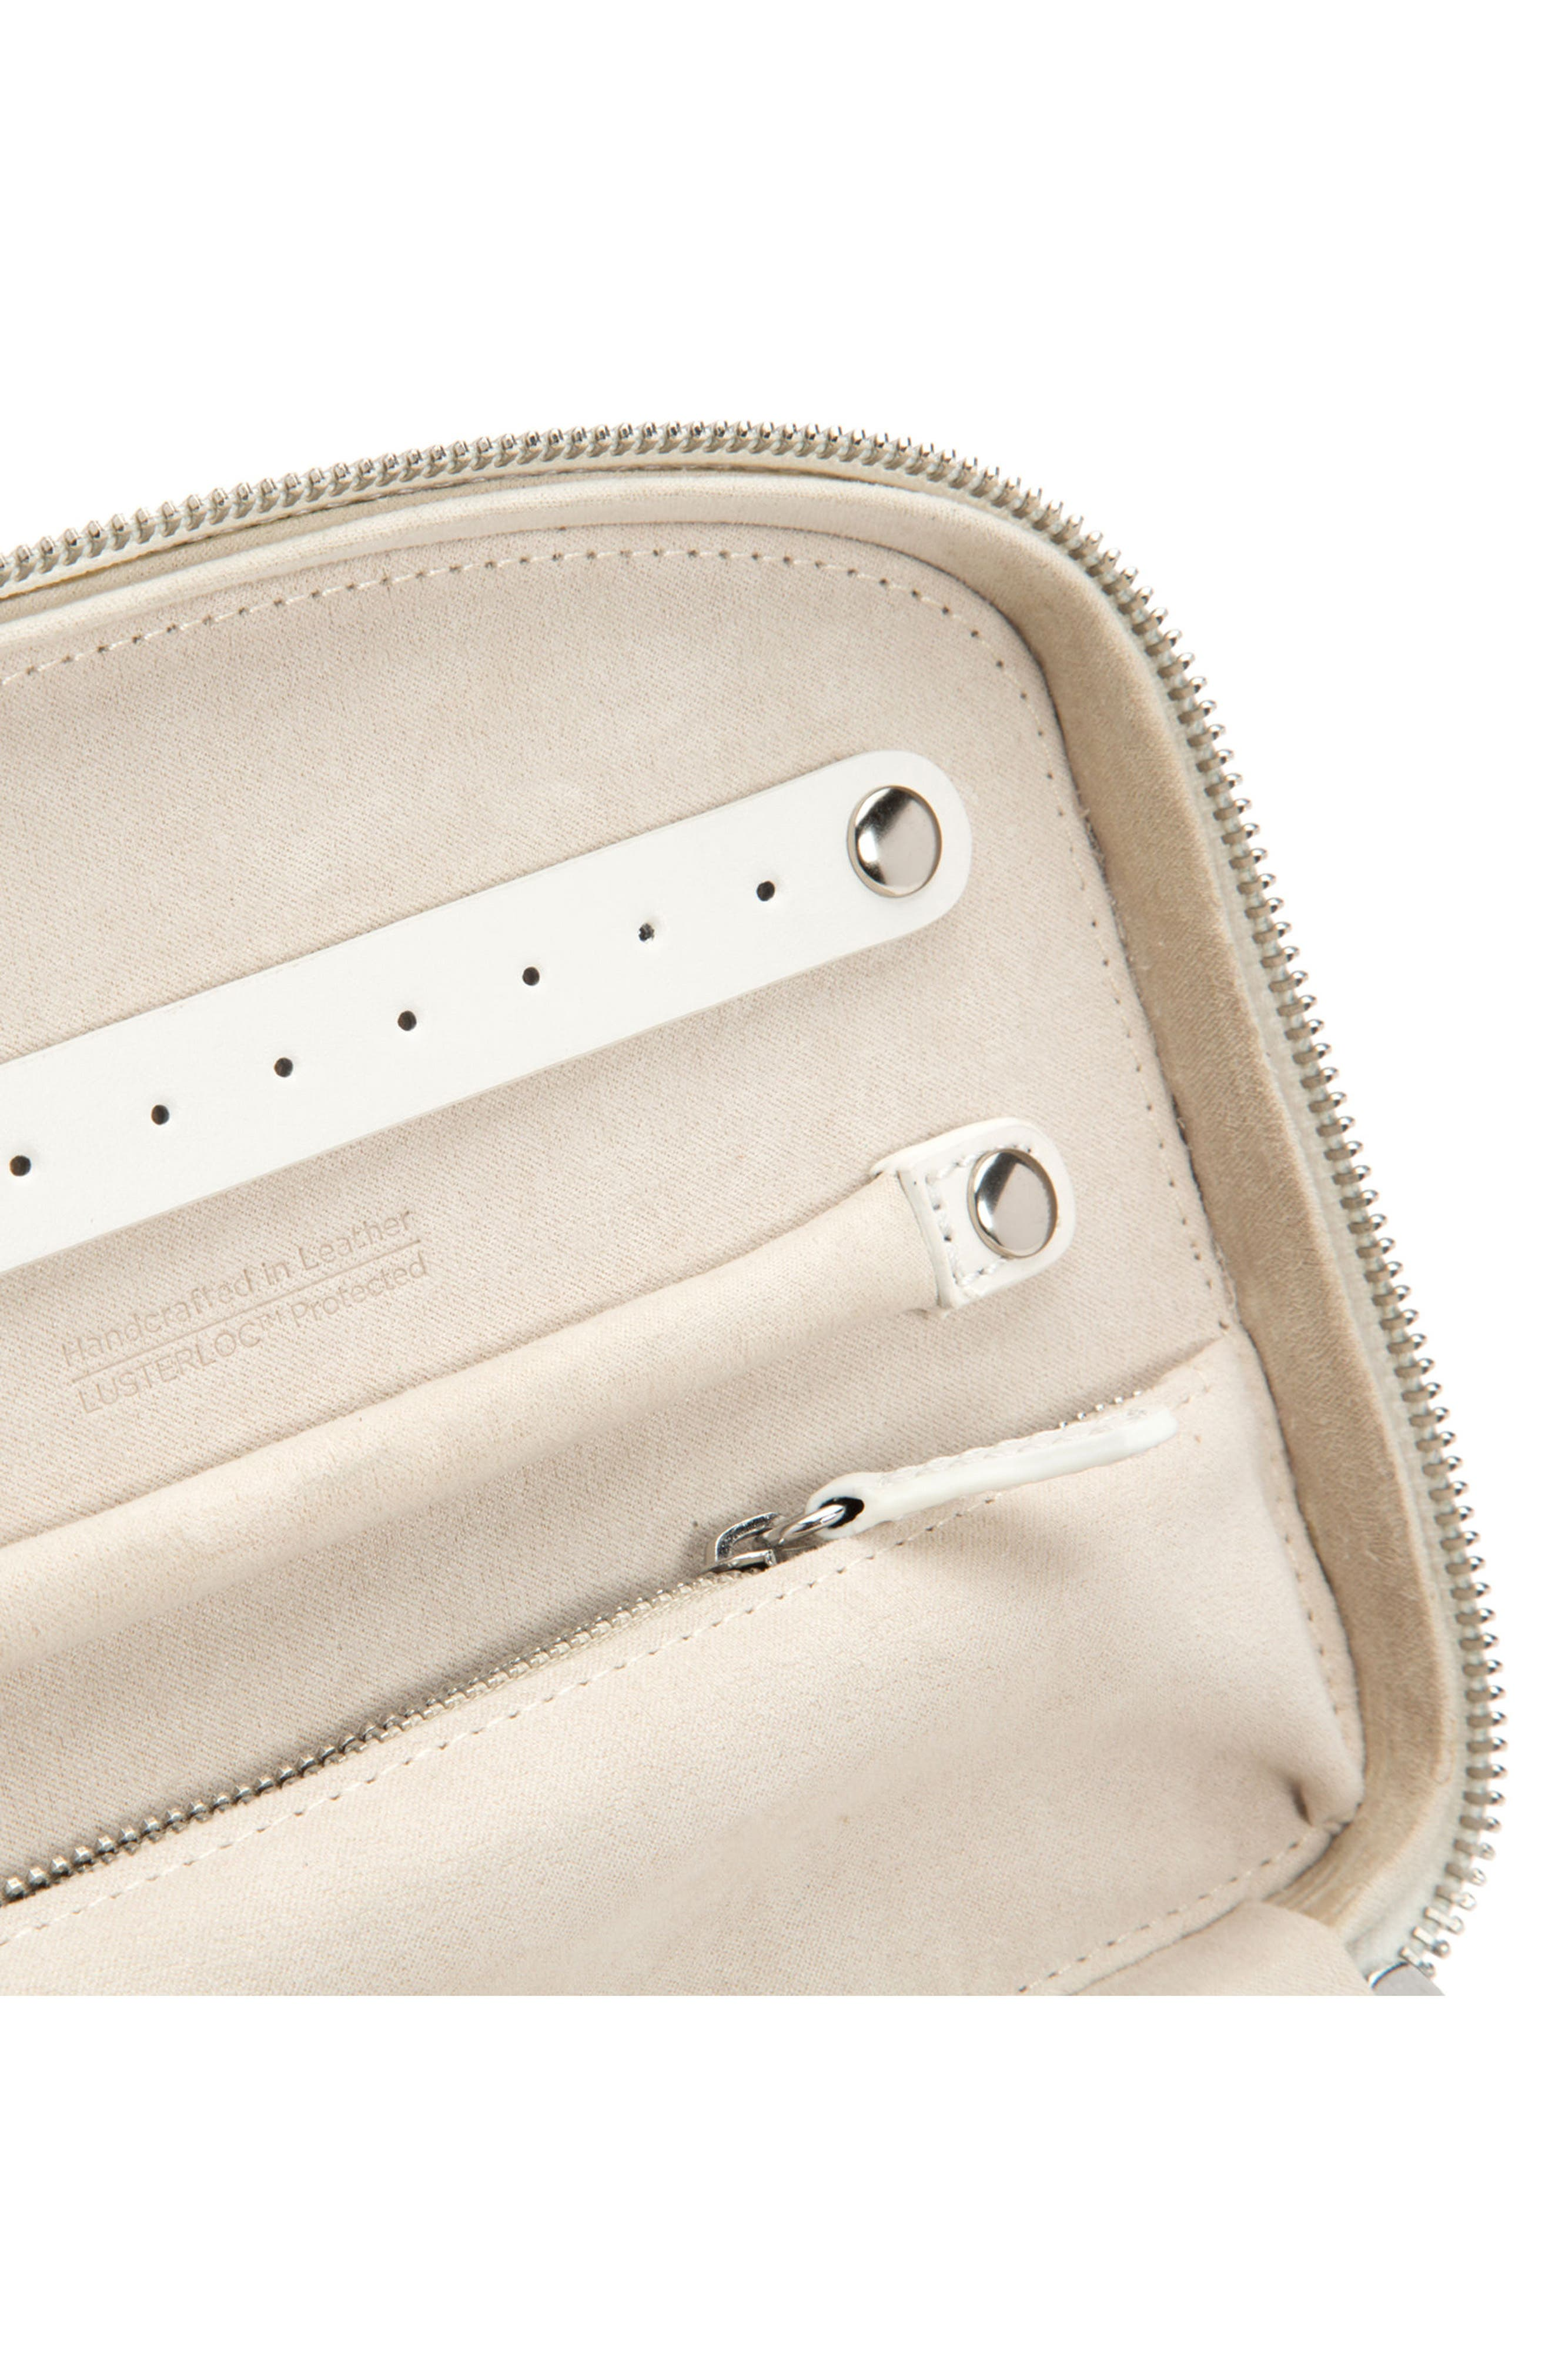 Blossom Leather Travel Jewelry Case,                             Alternate thumbnail 3, color,                             IVORY